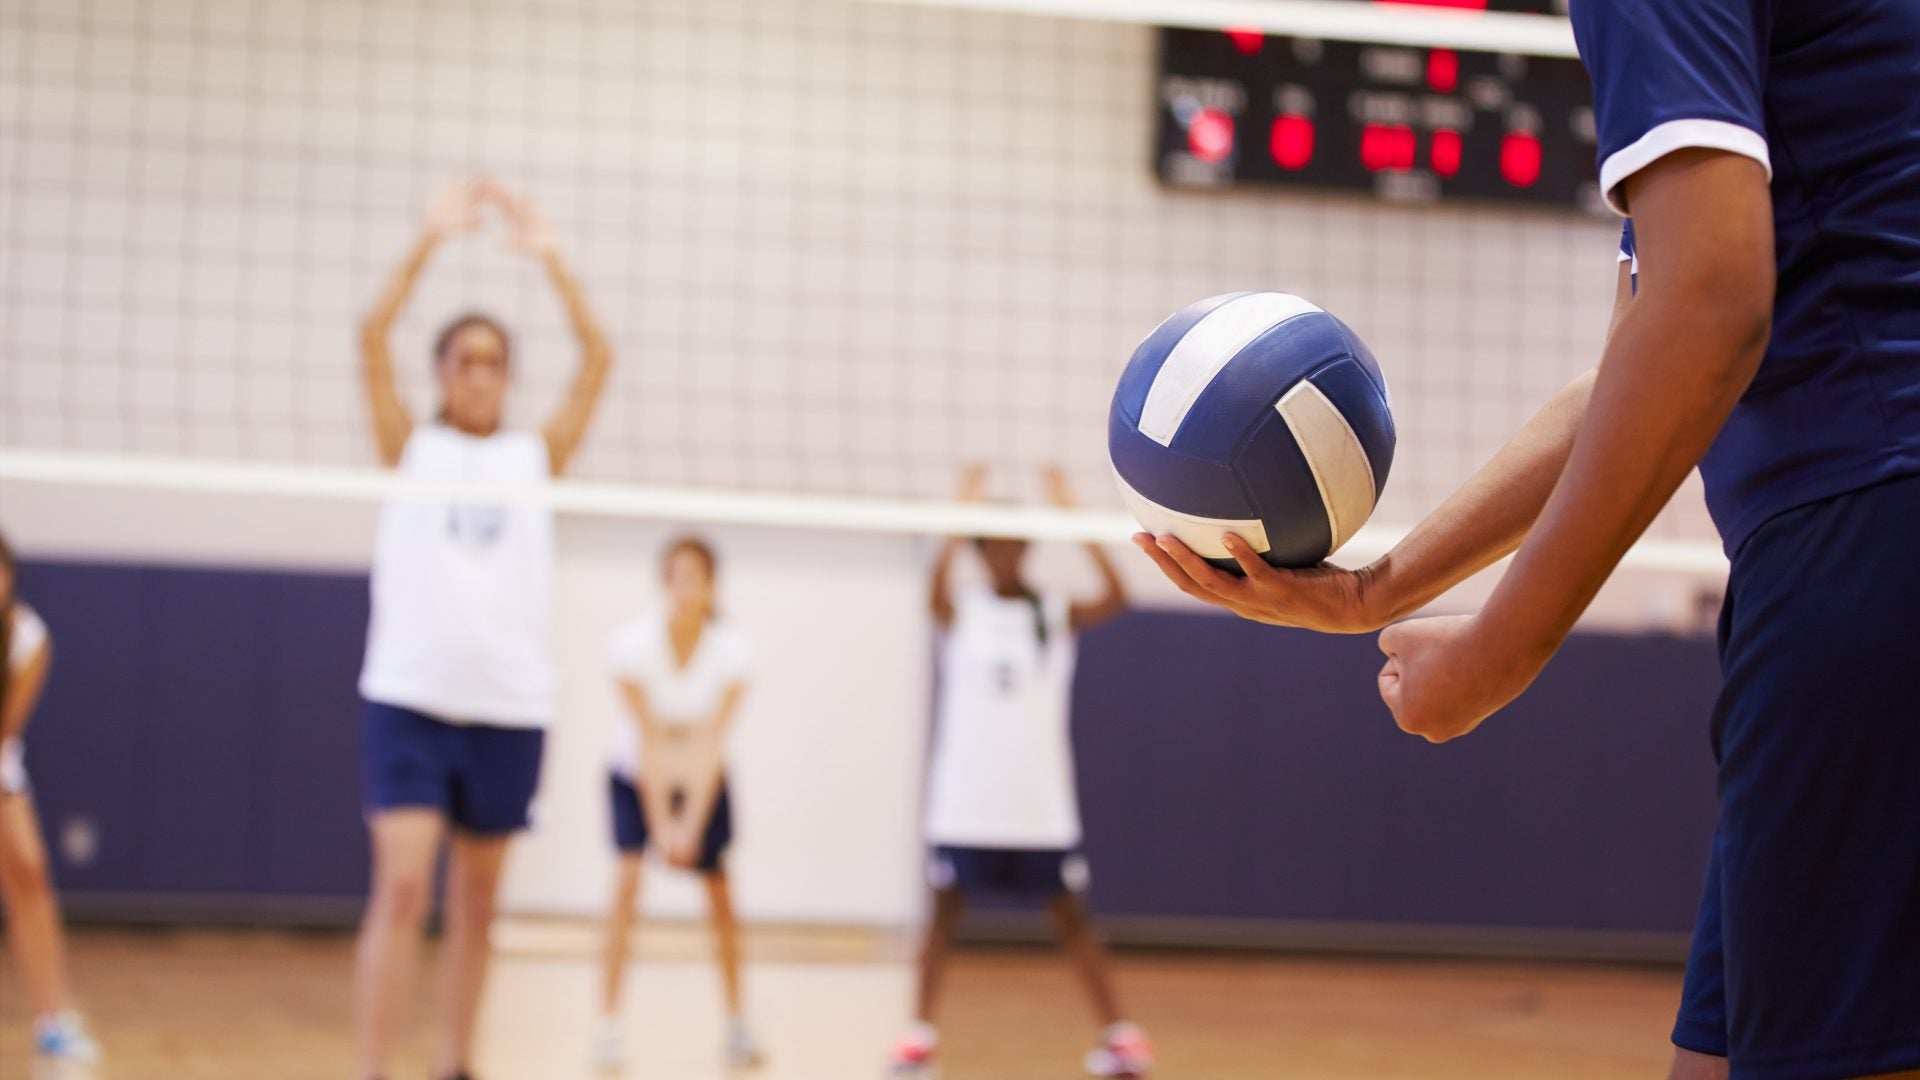 Kansas High Schoolers Subject To Racial Slurs During Volleyball Game